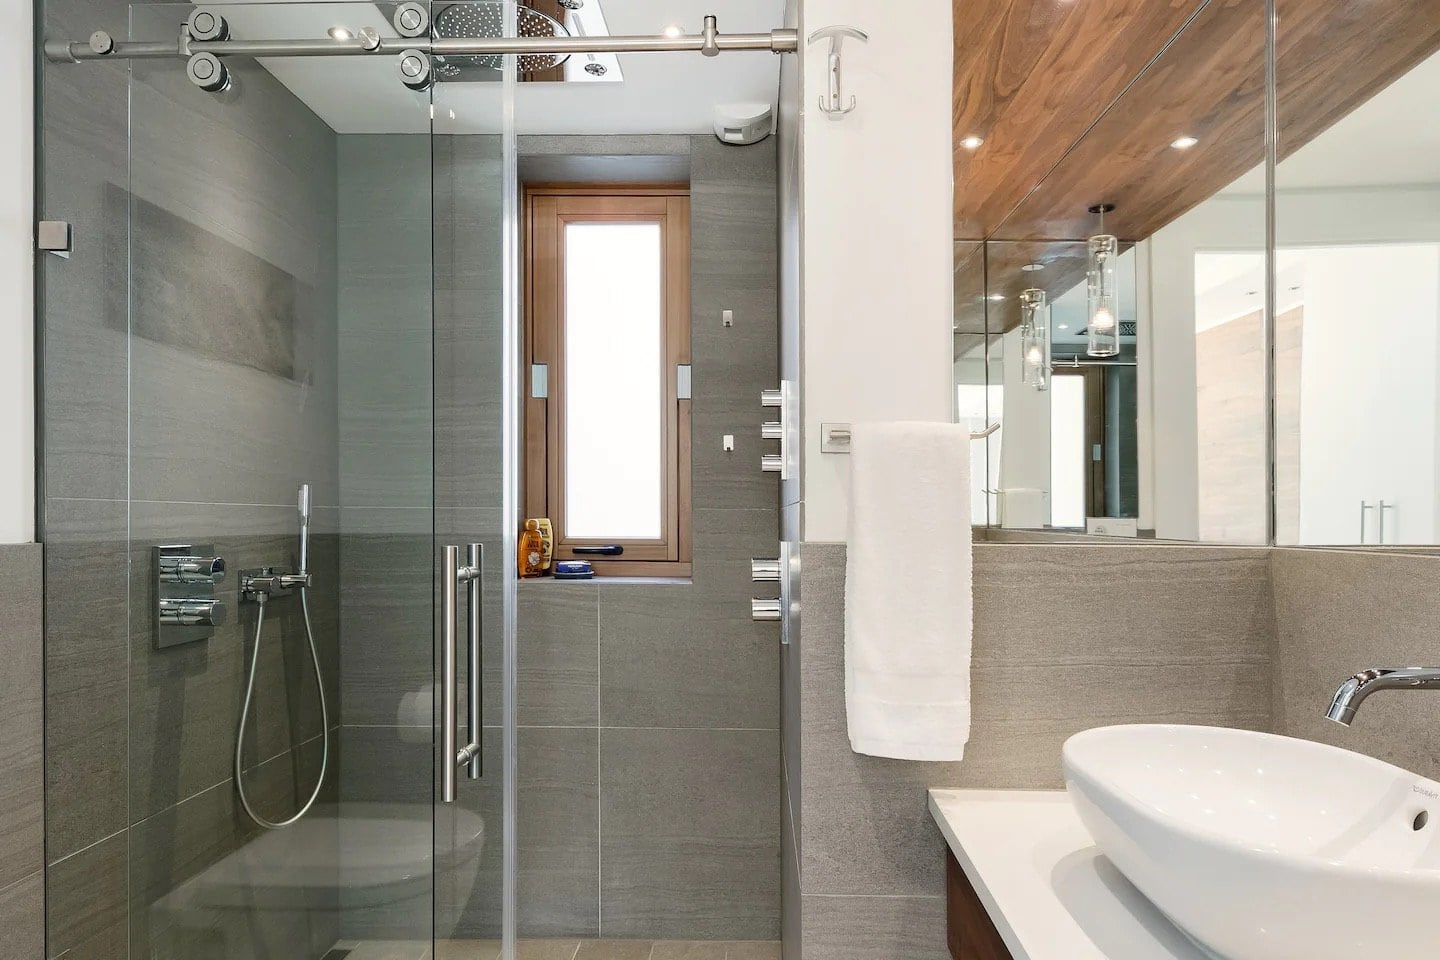 Horizontal photo of one of the two full bathrooms in our condo in Argentière, France.